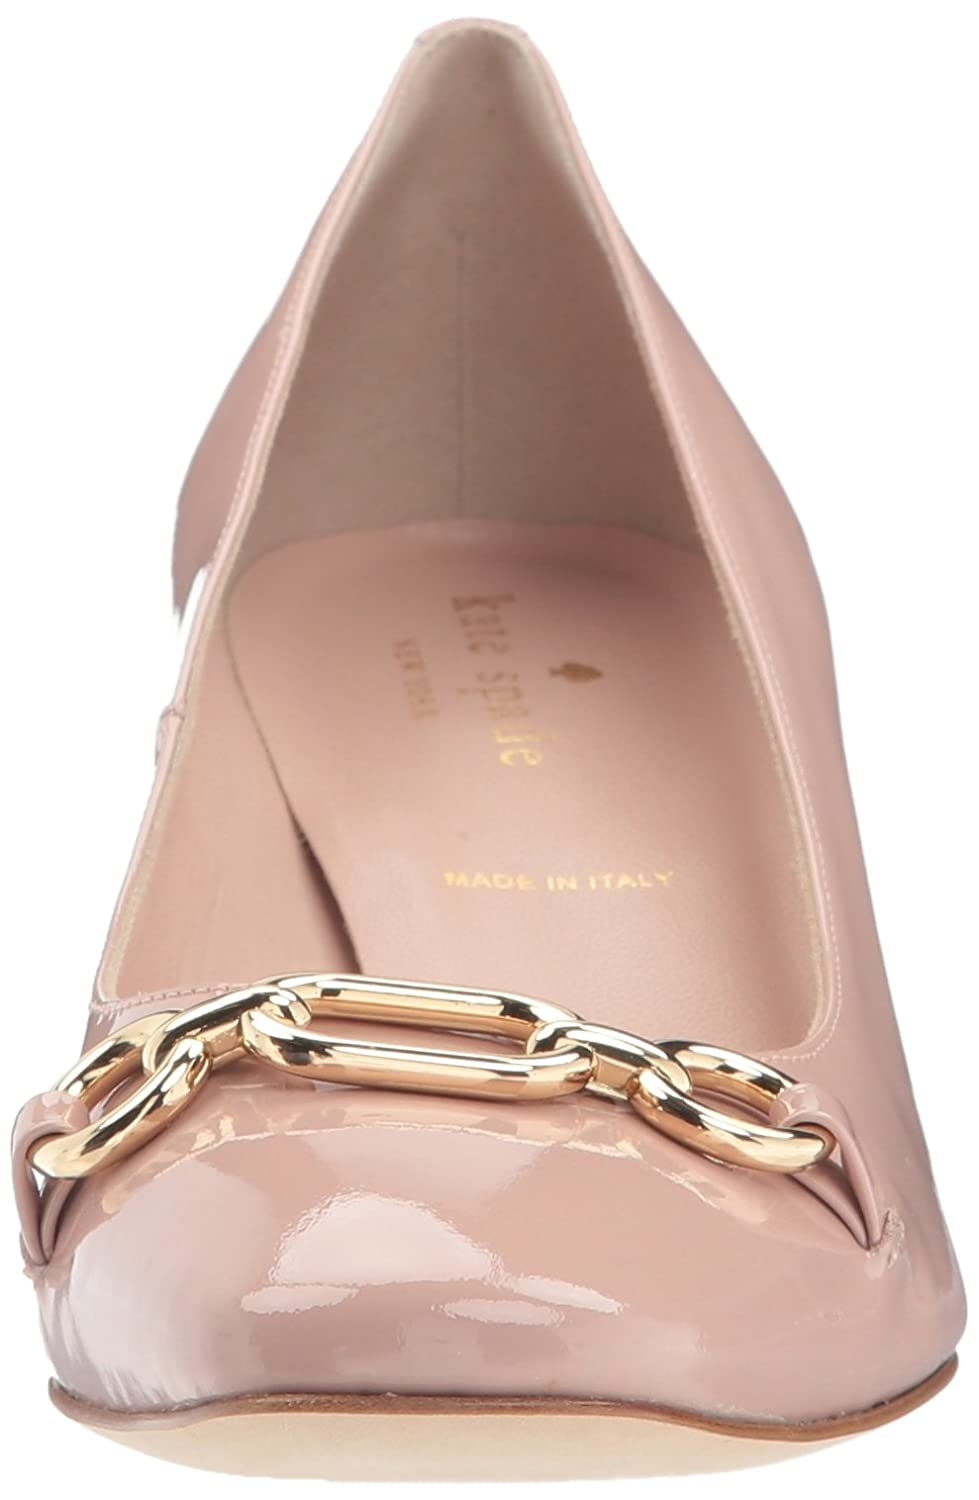 2309edfd5f8d kate spade new york Women s Dillian Pump  Buy Online at Low Prices in India  - Amazon.in